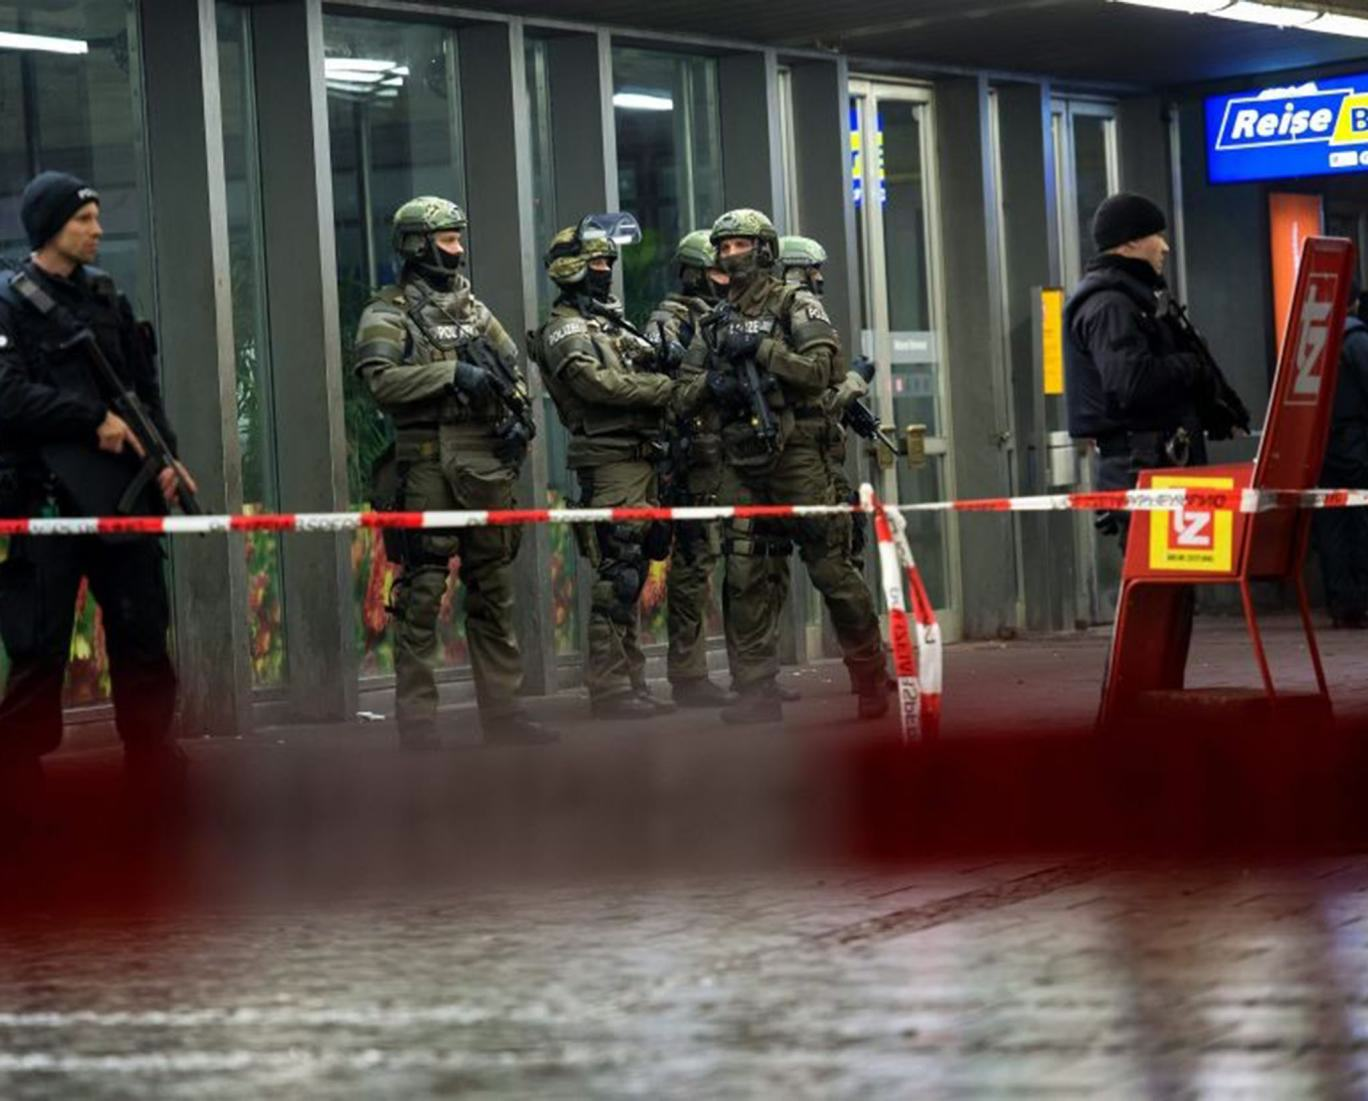 Police Evacuate Two Train Stations In Munich After Isis Terror Threat munich